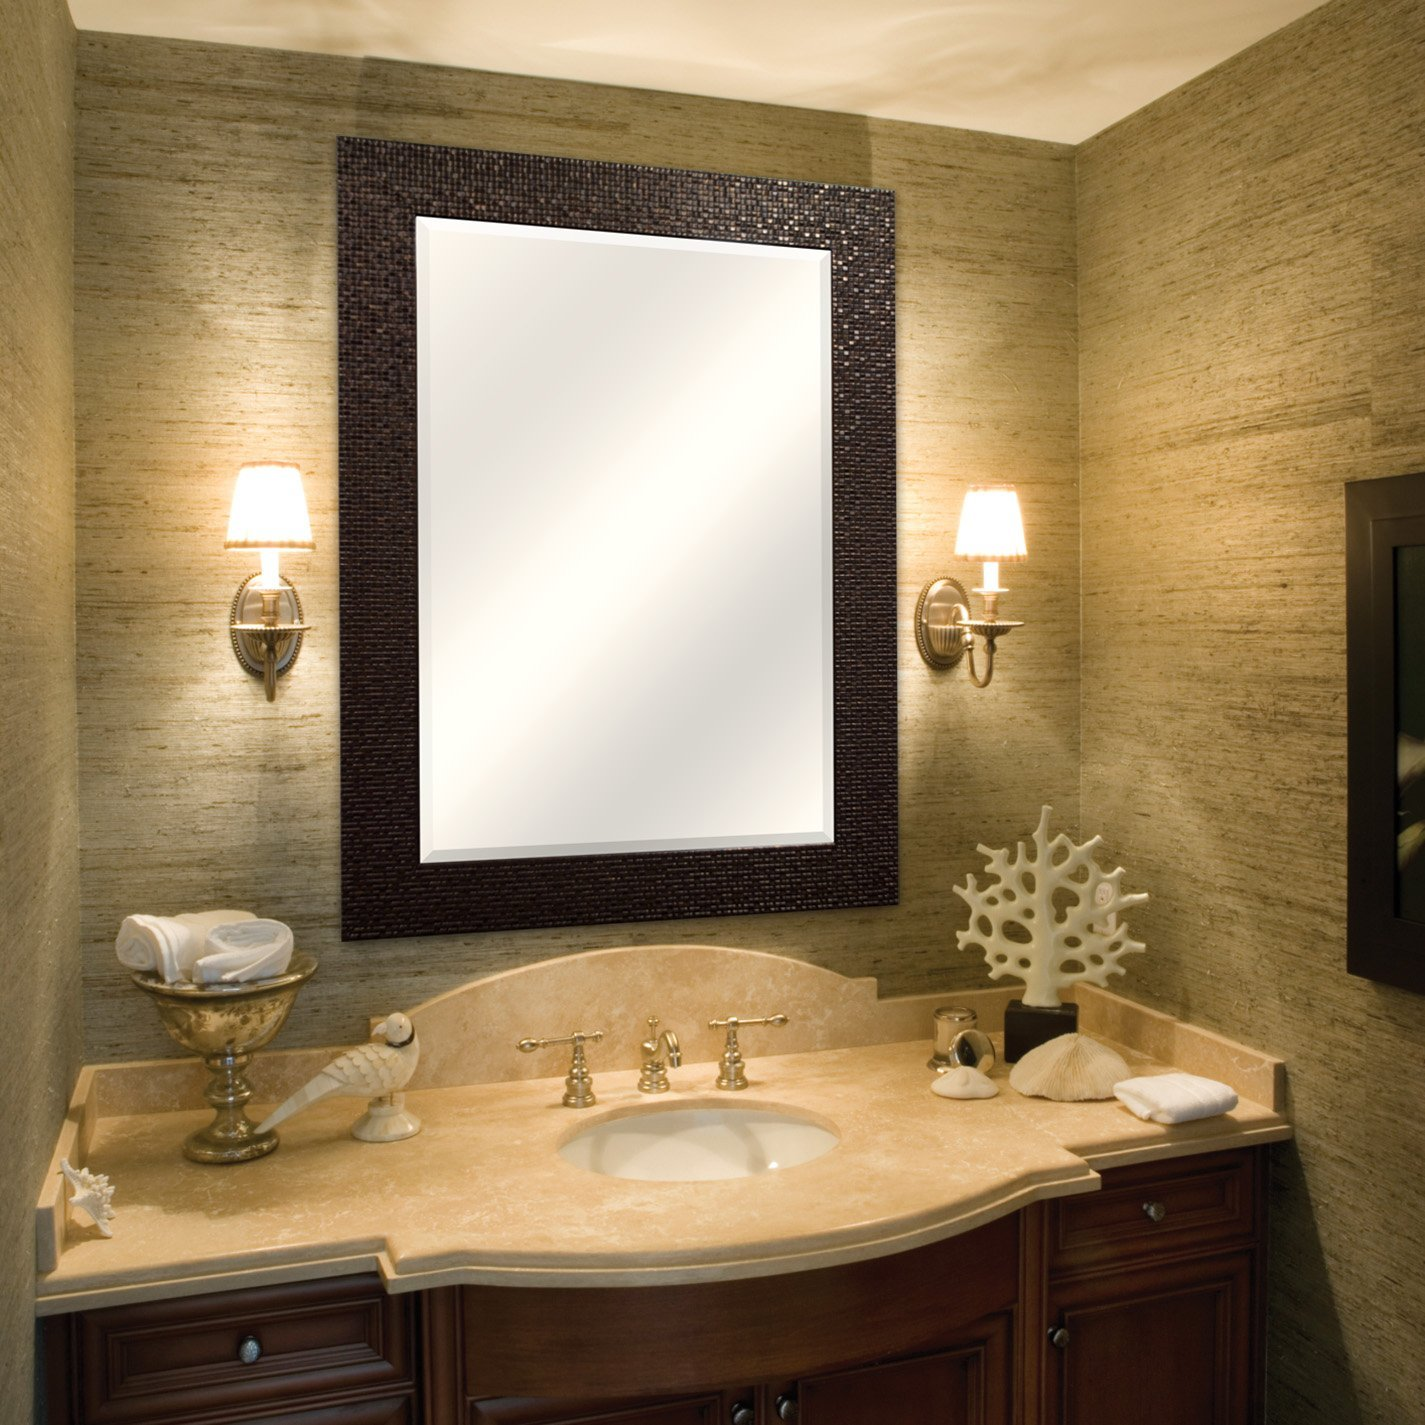 amazon com mcs 24x36 inch embossed tile wall mirror 32x44 inch